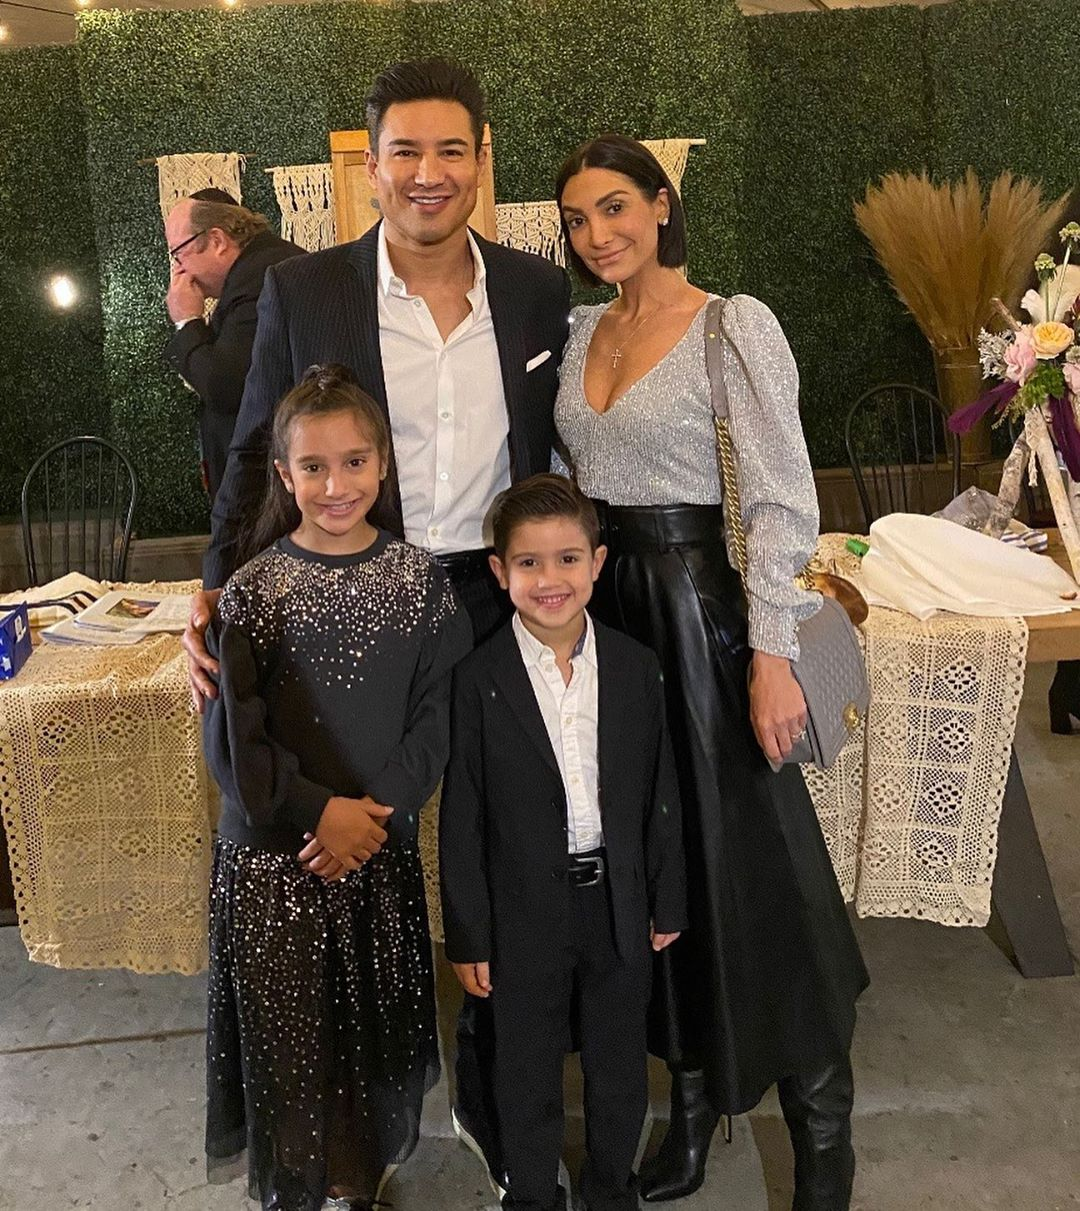 Mario Lopez And Wife Courtney Mazza Dance With Kids In Cute Video